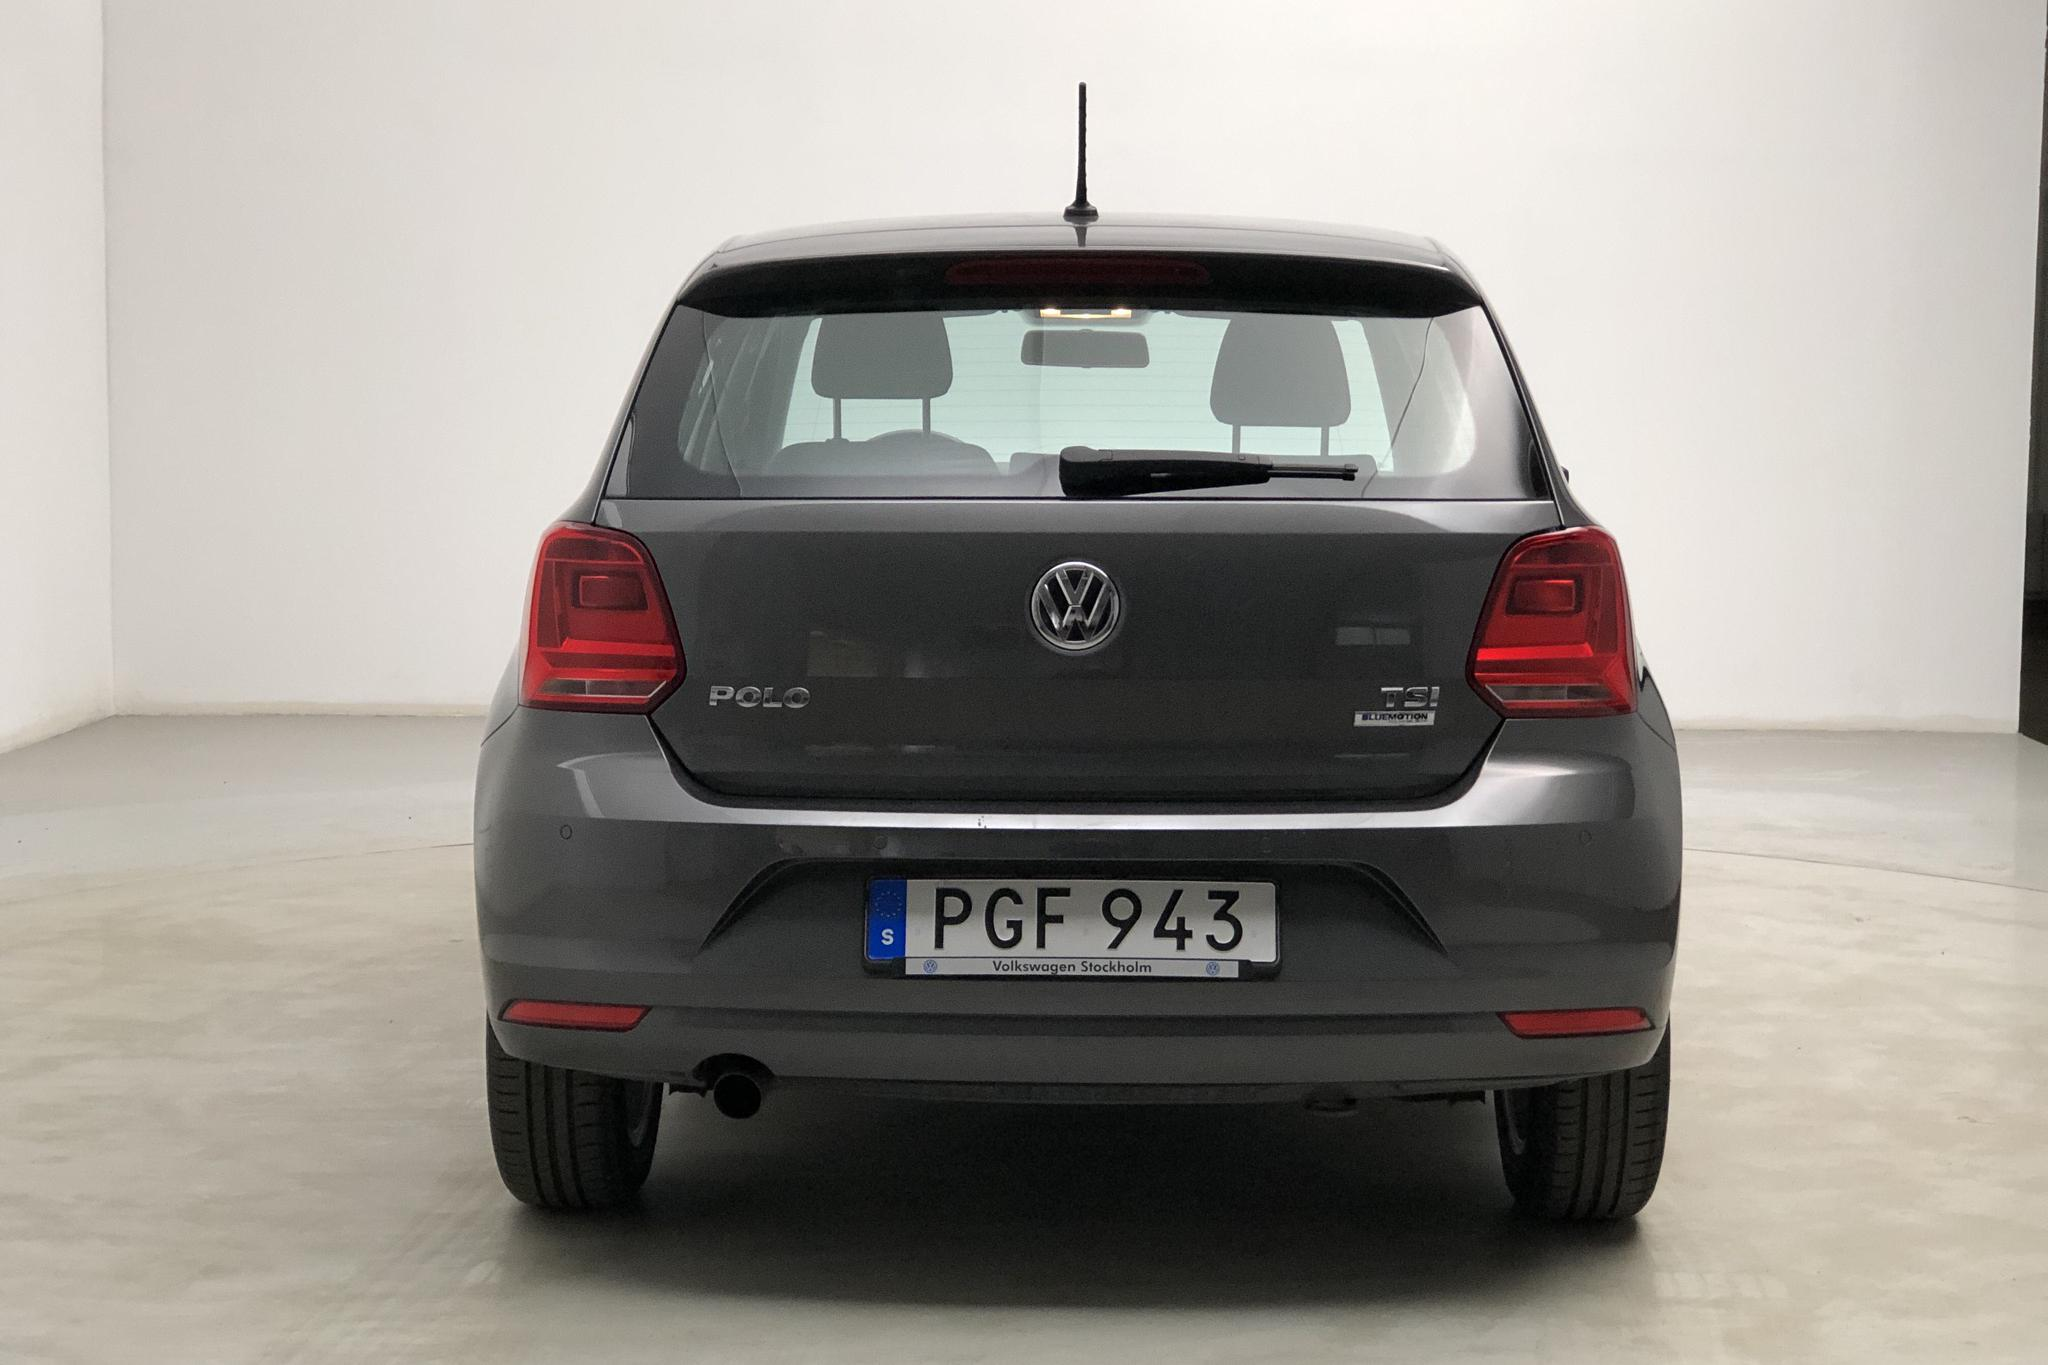 VW Polo 1.2 TSI 5dr (90hk) - 43 740 km - Manual - Dark Grey - 2017